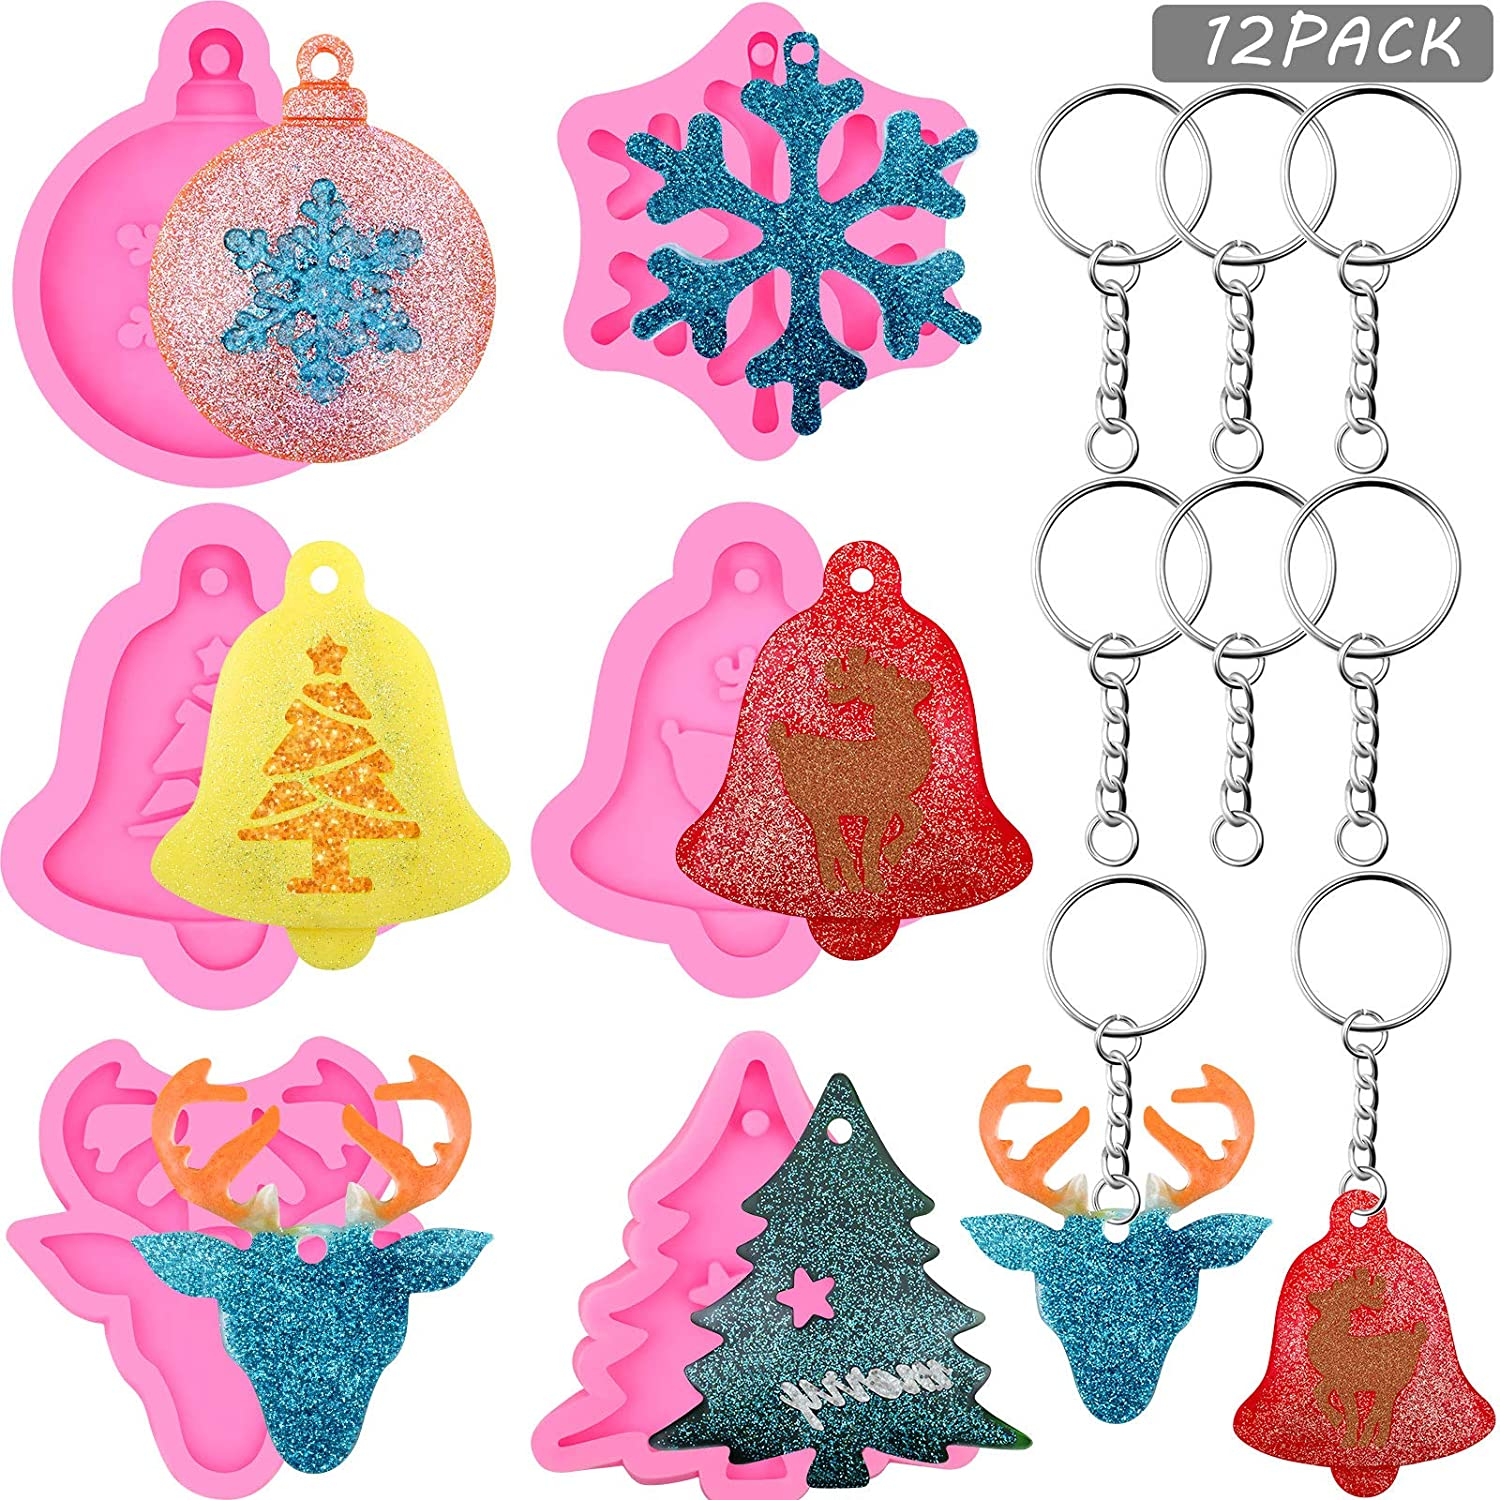 12 Pieces Christmas Resin Mold Keychain Set, 6 Pieces Merry Christmas Tree Bell Snowflake Reindeer Silicone Molds with 6 Pieces Keychain for DIY Chocolate Candy Mold Epoxy Resin Pendent Jewelry